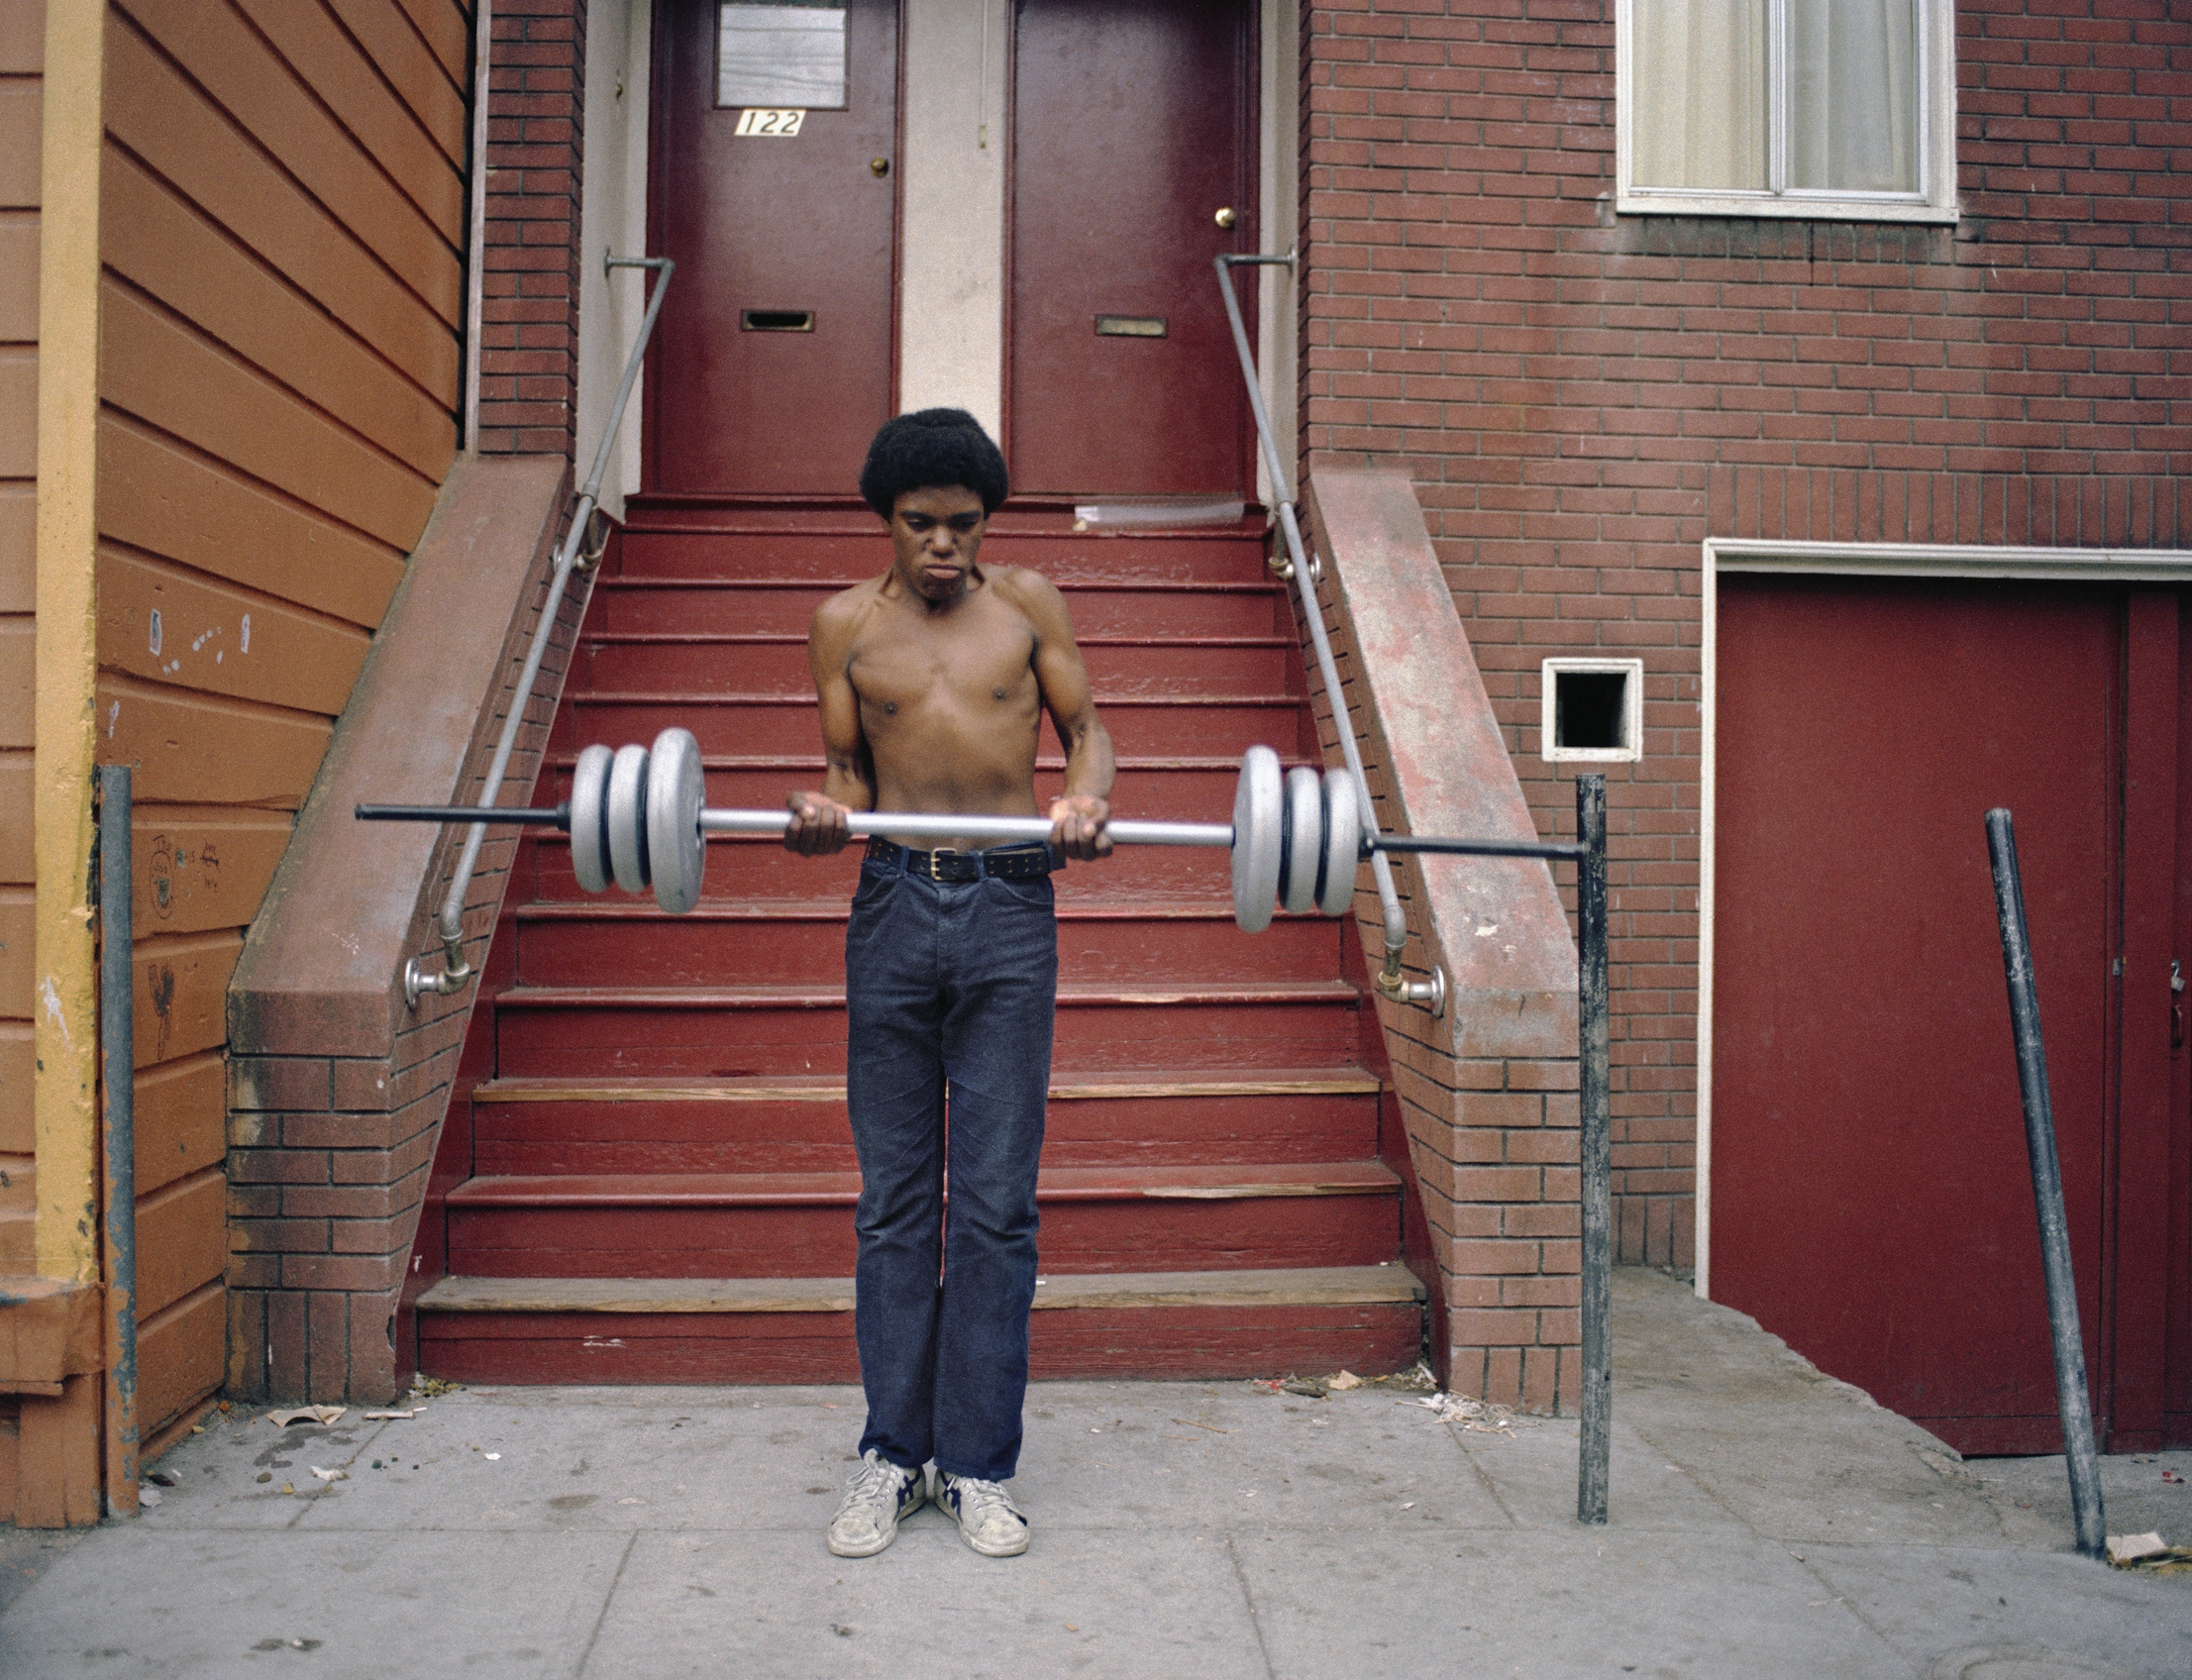 JANET DELANEY Boy lifting weights, 122 Langton Street, 1979 Archival Pigment Print, 2016 16 x 20 inches, edition of 5 20 x 24 inches, edition of 2 30 x 40 inches, edition of 2